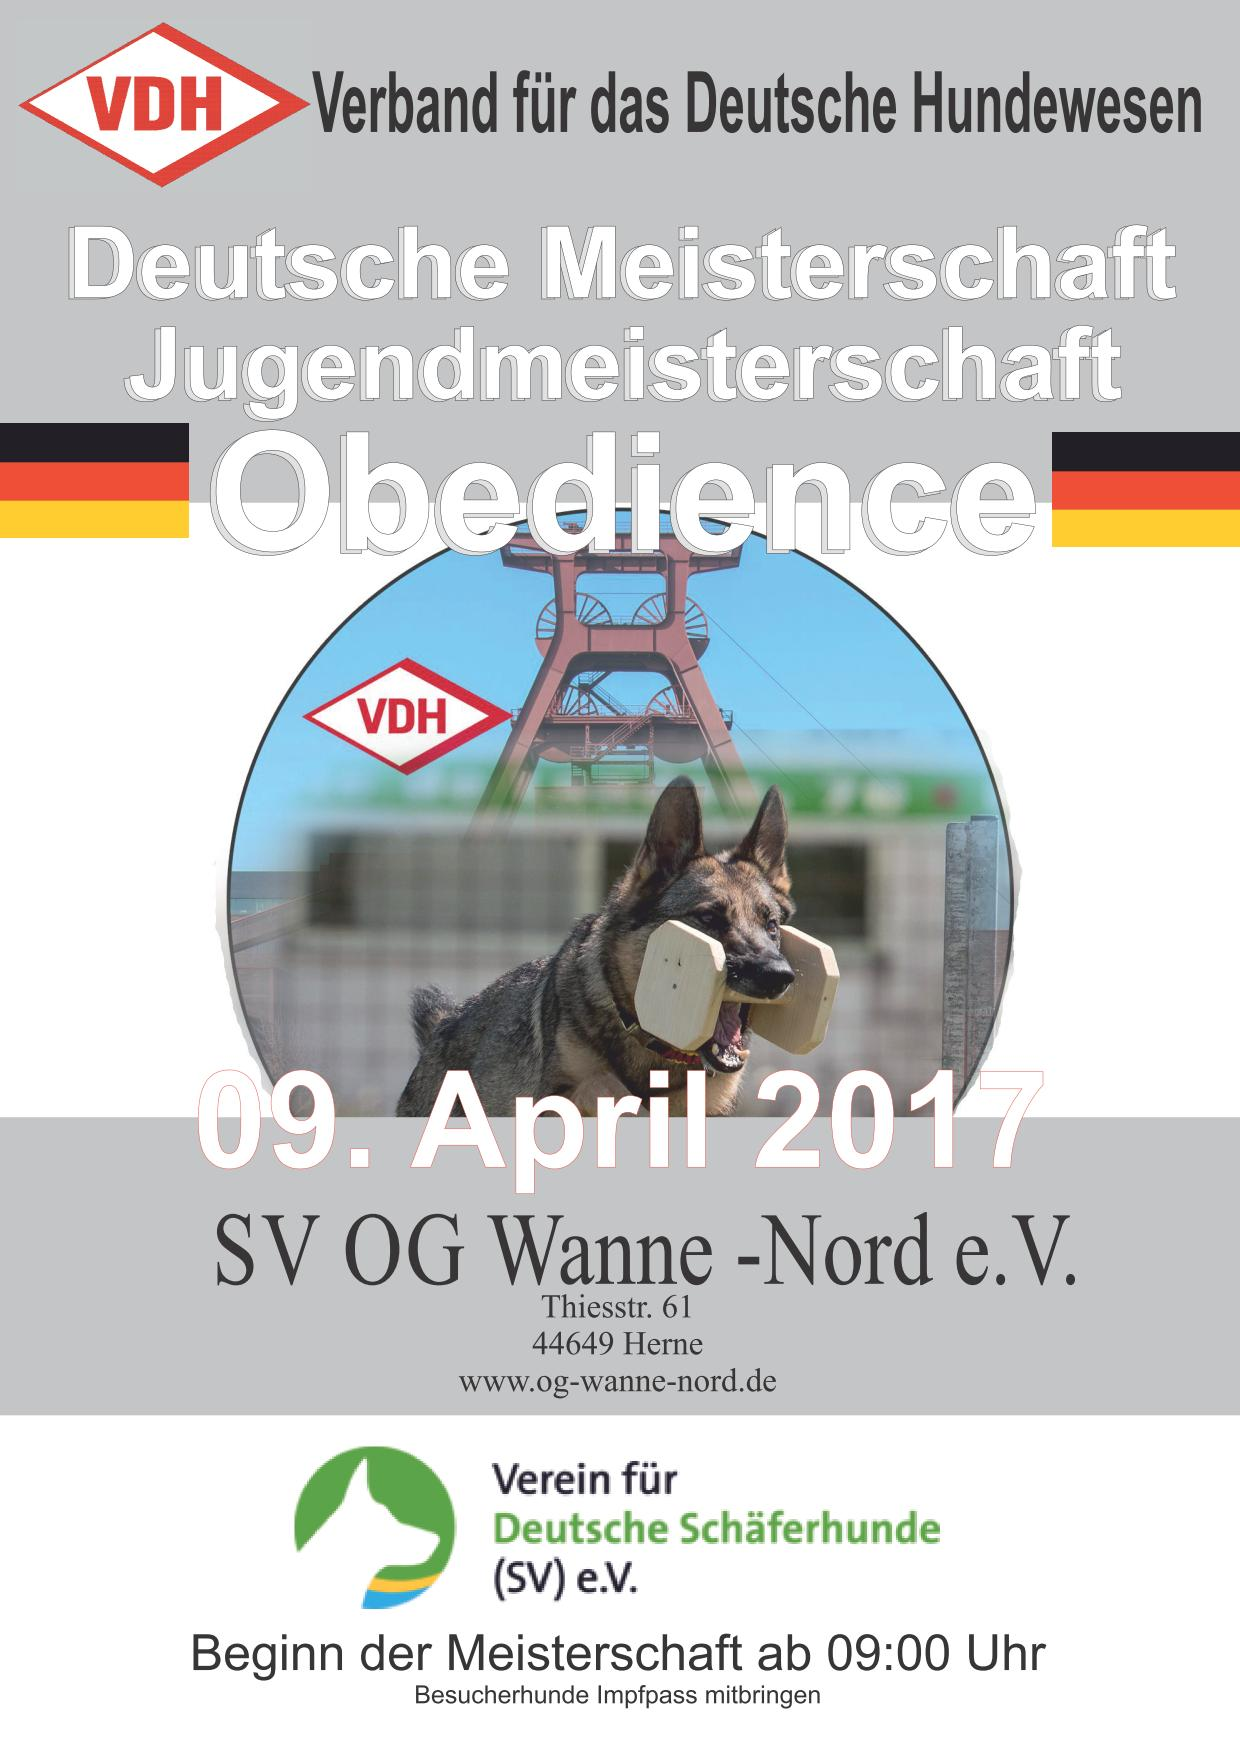 vdh_dm_obedience_2017_plakat-1.jpg